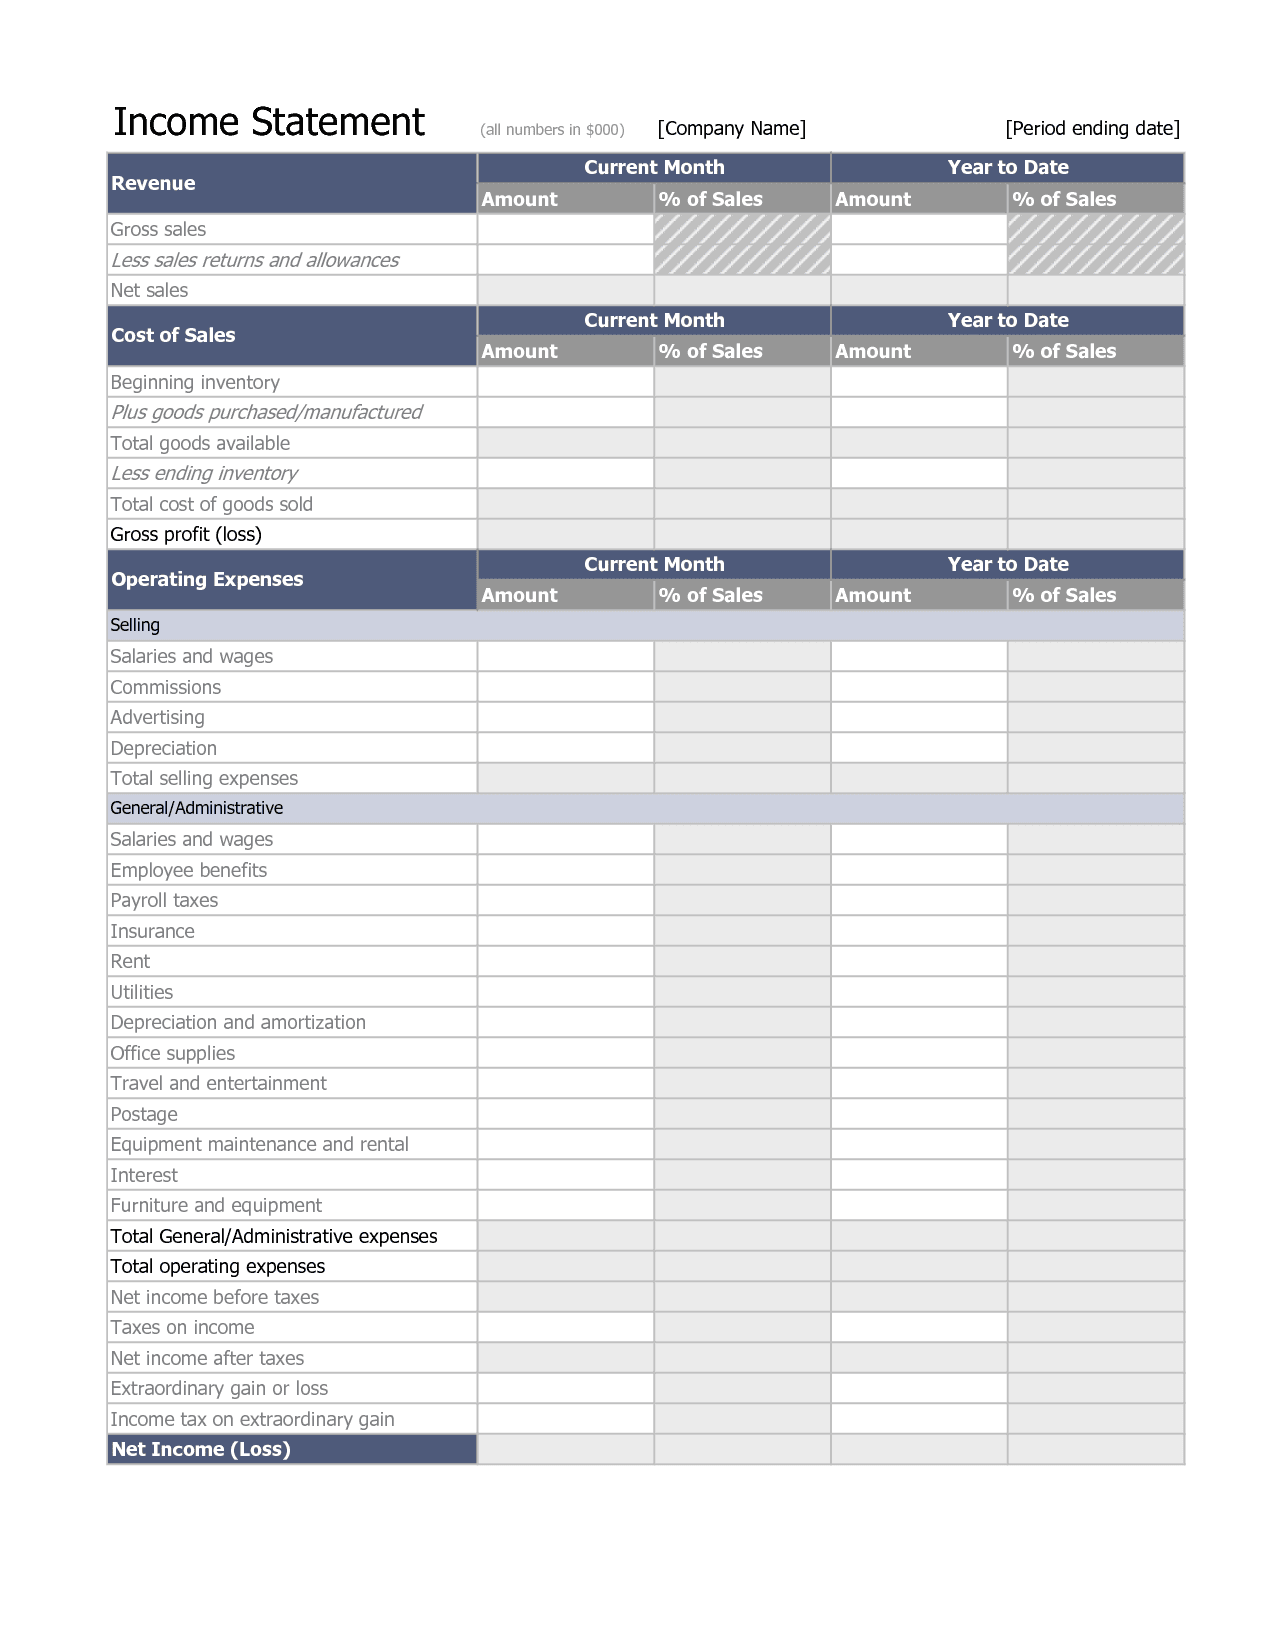 Income Statement Worksheet Excel Income Statement Worksheet Spreadsheet Templates for Business Income Statement Template Income Spreadshee Spreadsheet Templates for Business Income Statement Template Income Spreadshee Worksheet Income Statement Balance Sheet